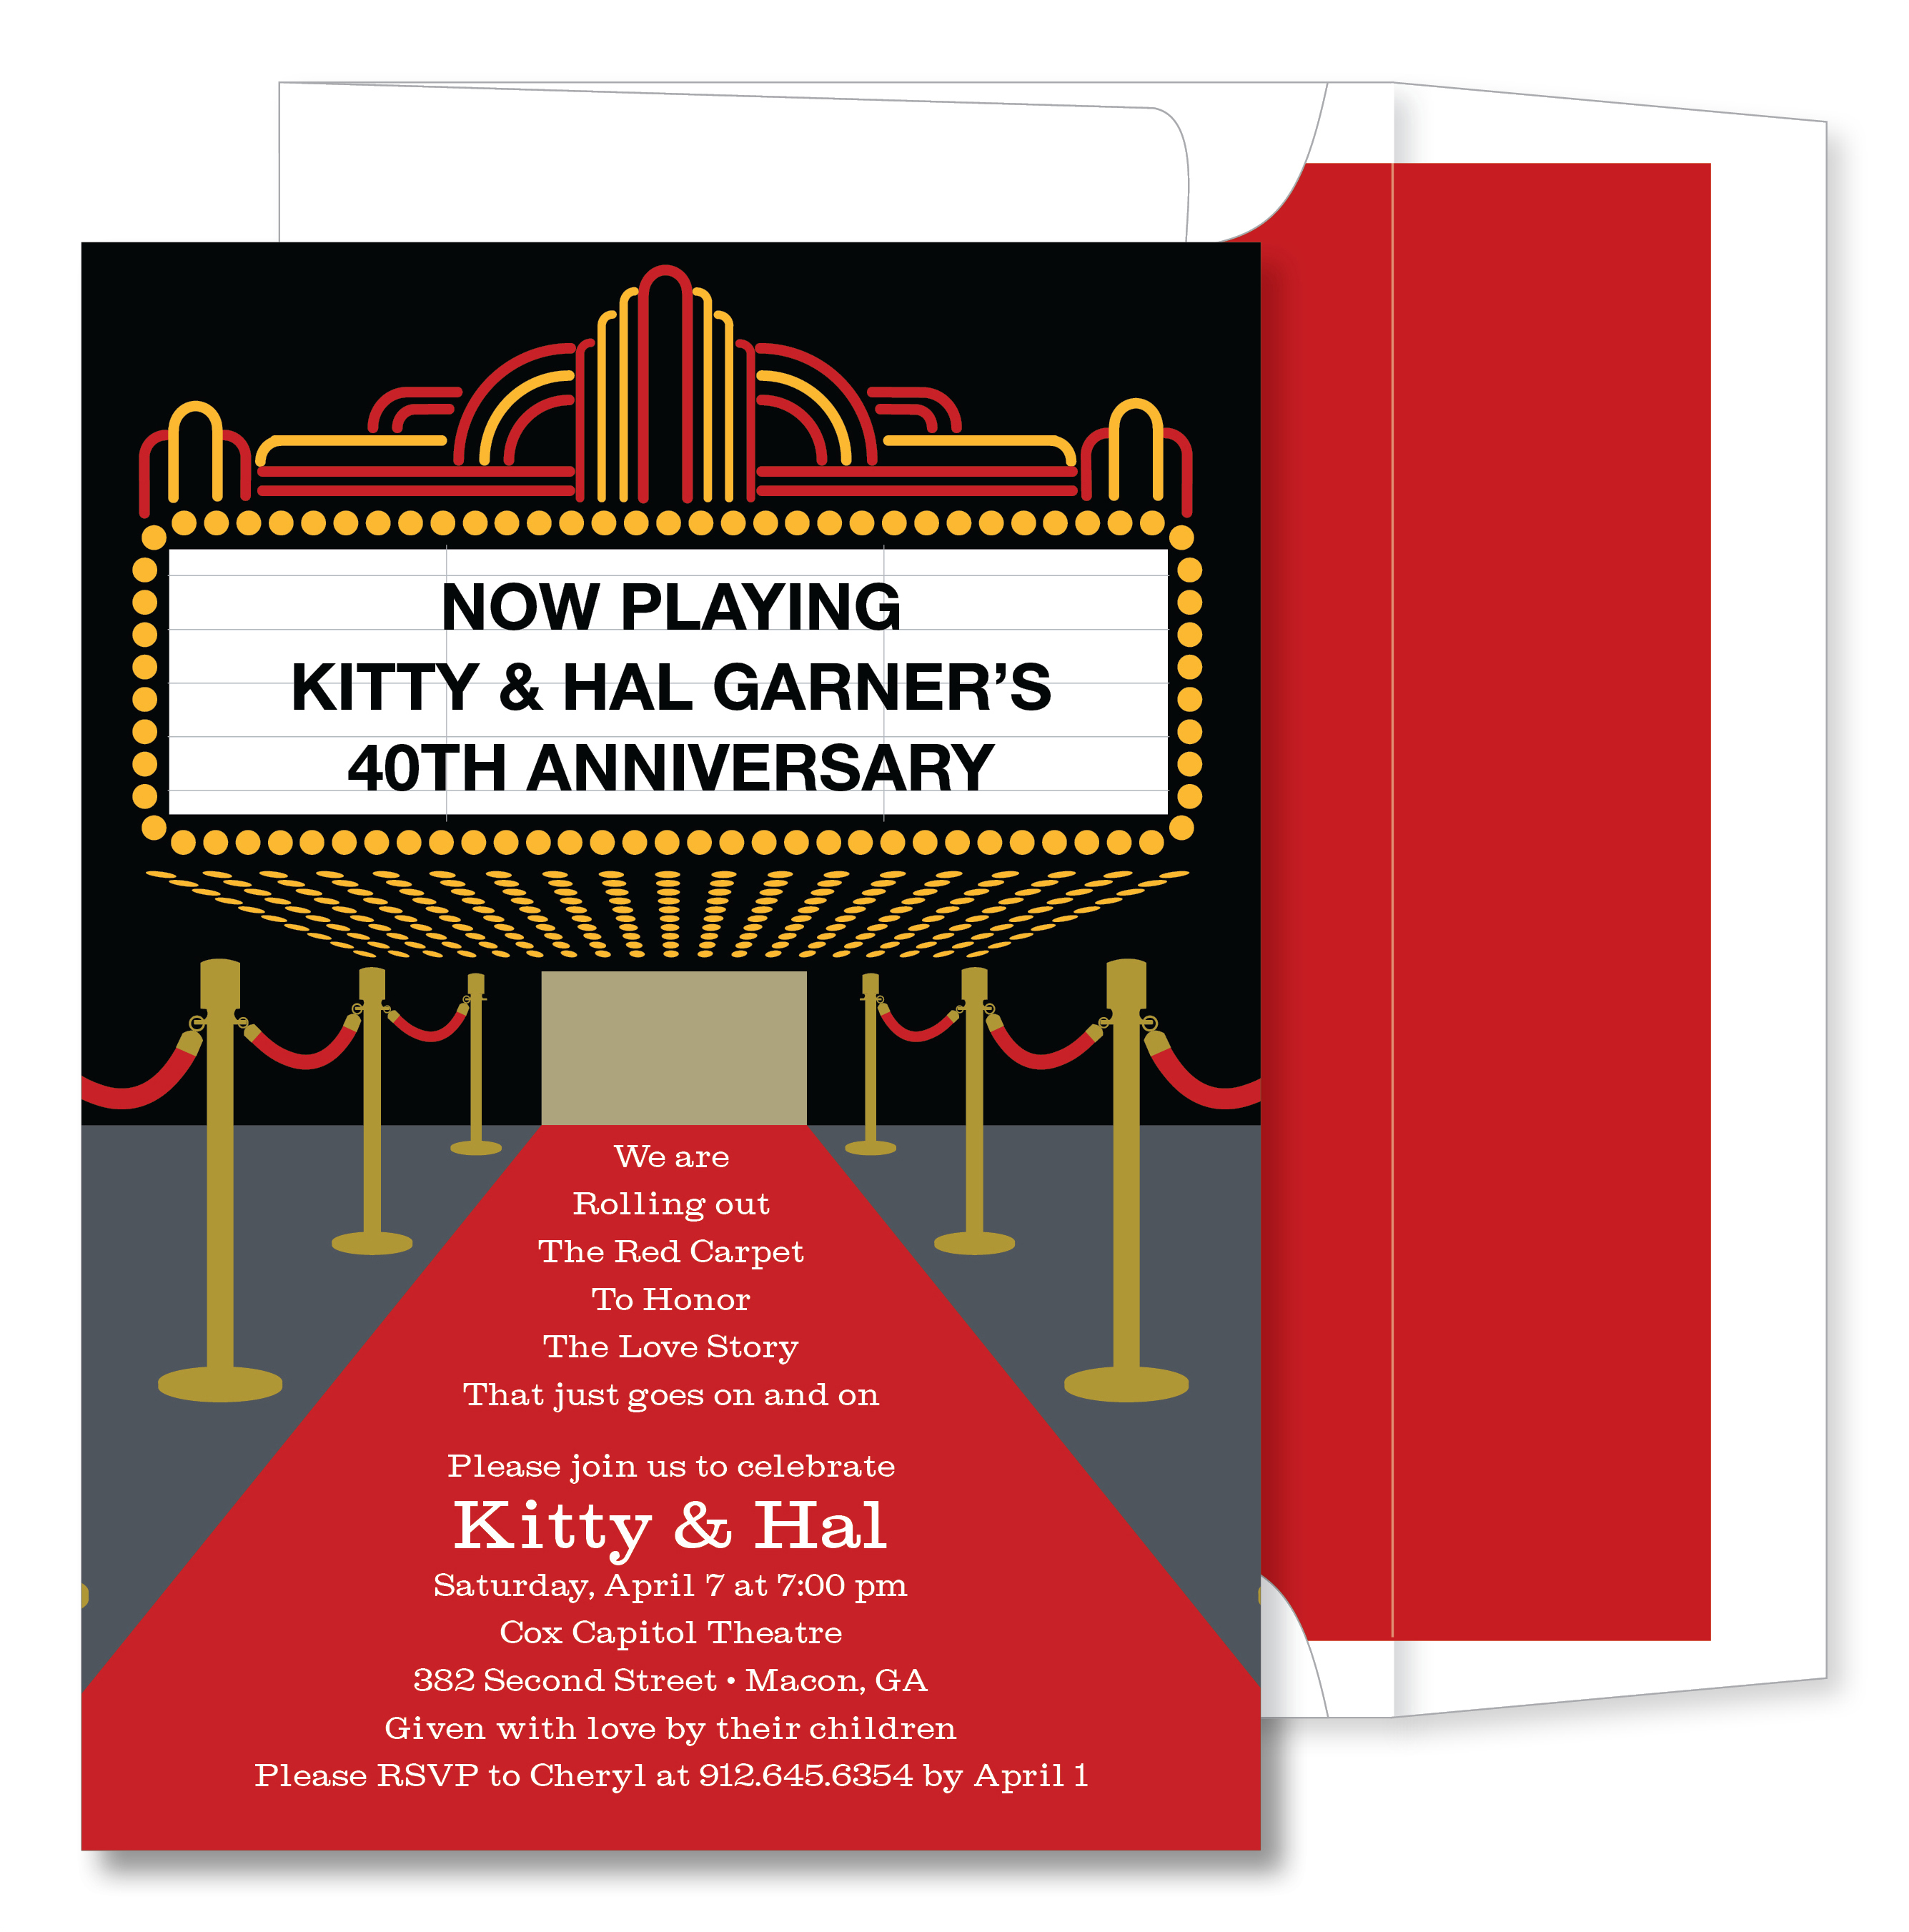 Quick View NOT ID 1122 Red Carpet Invitation